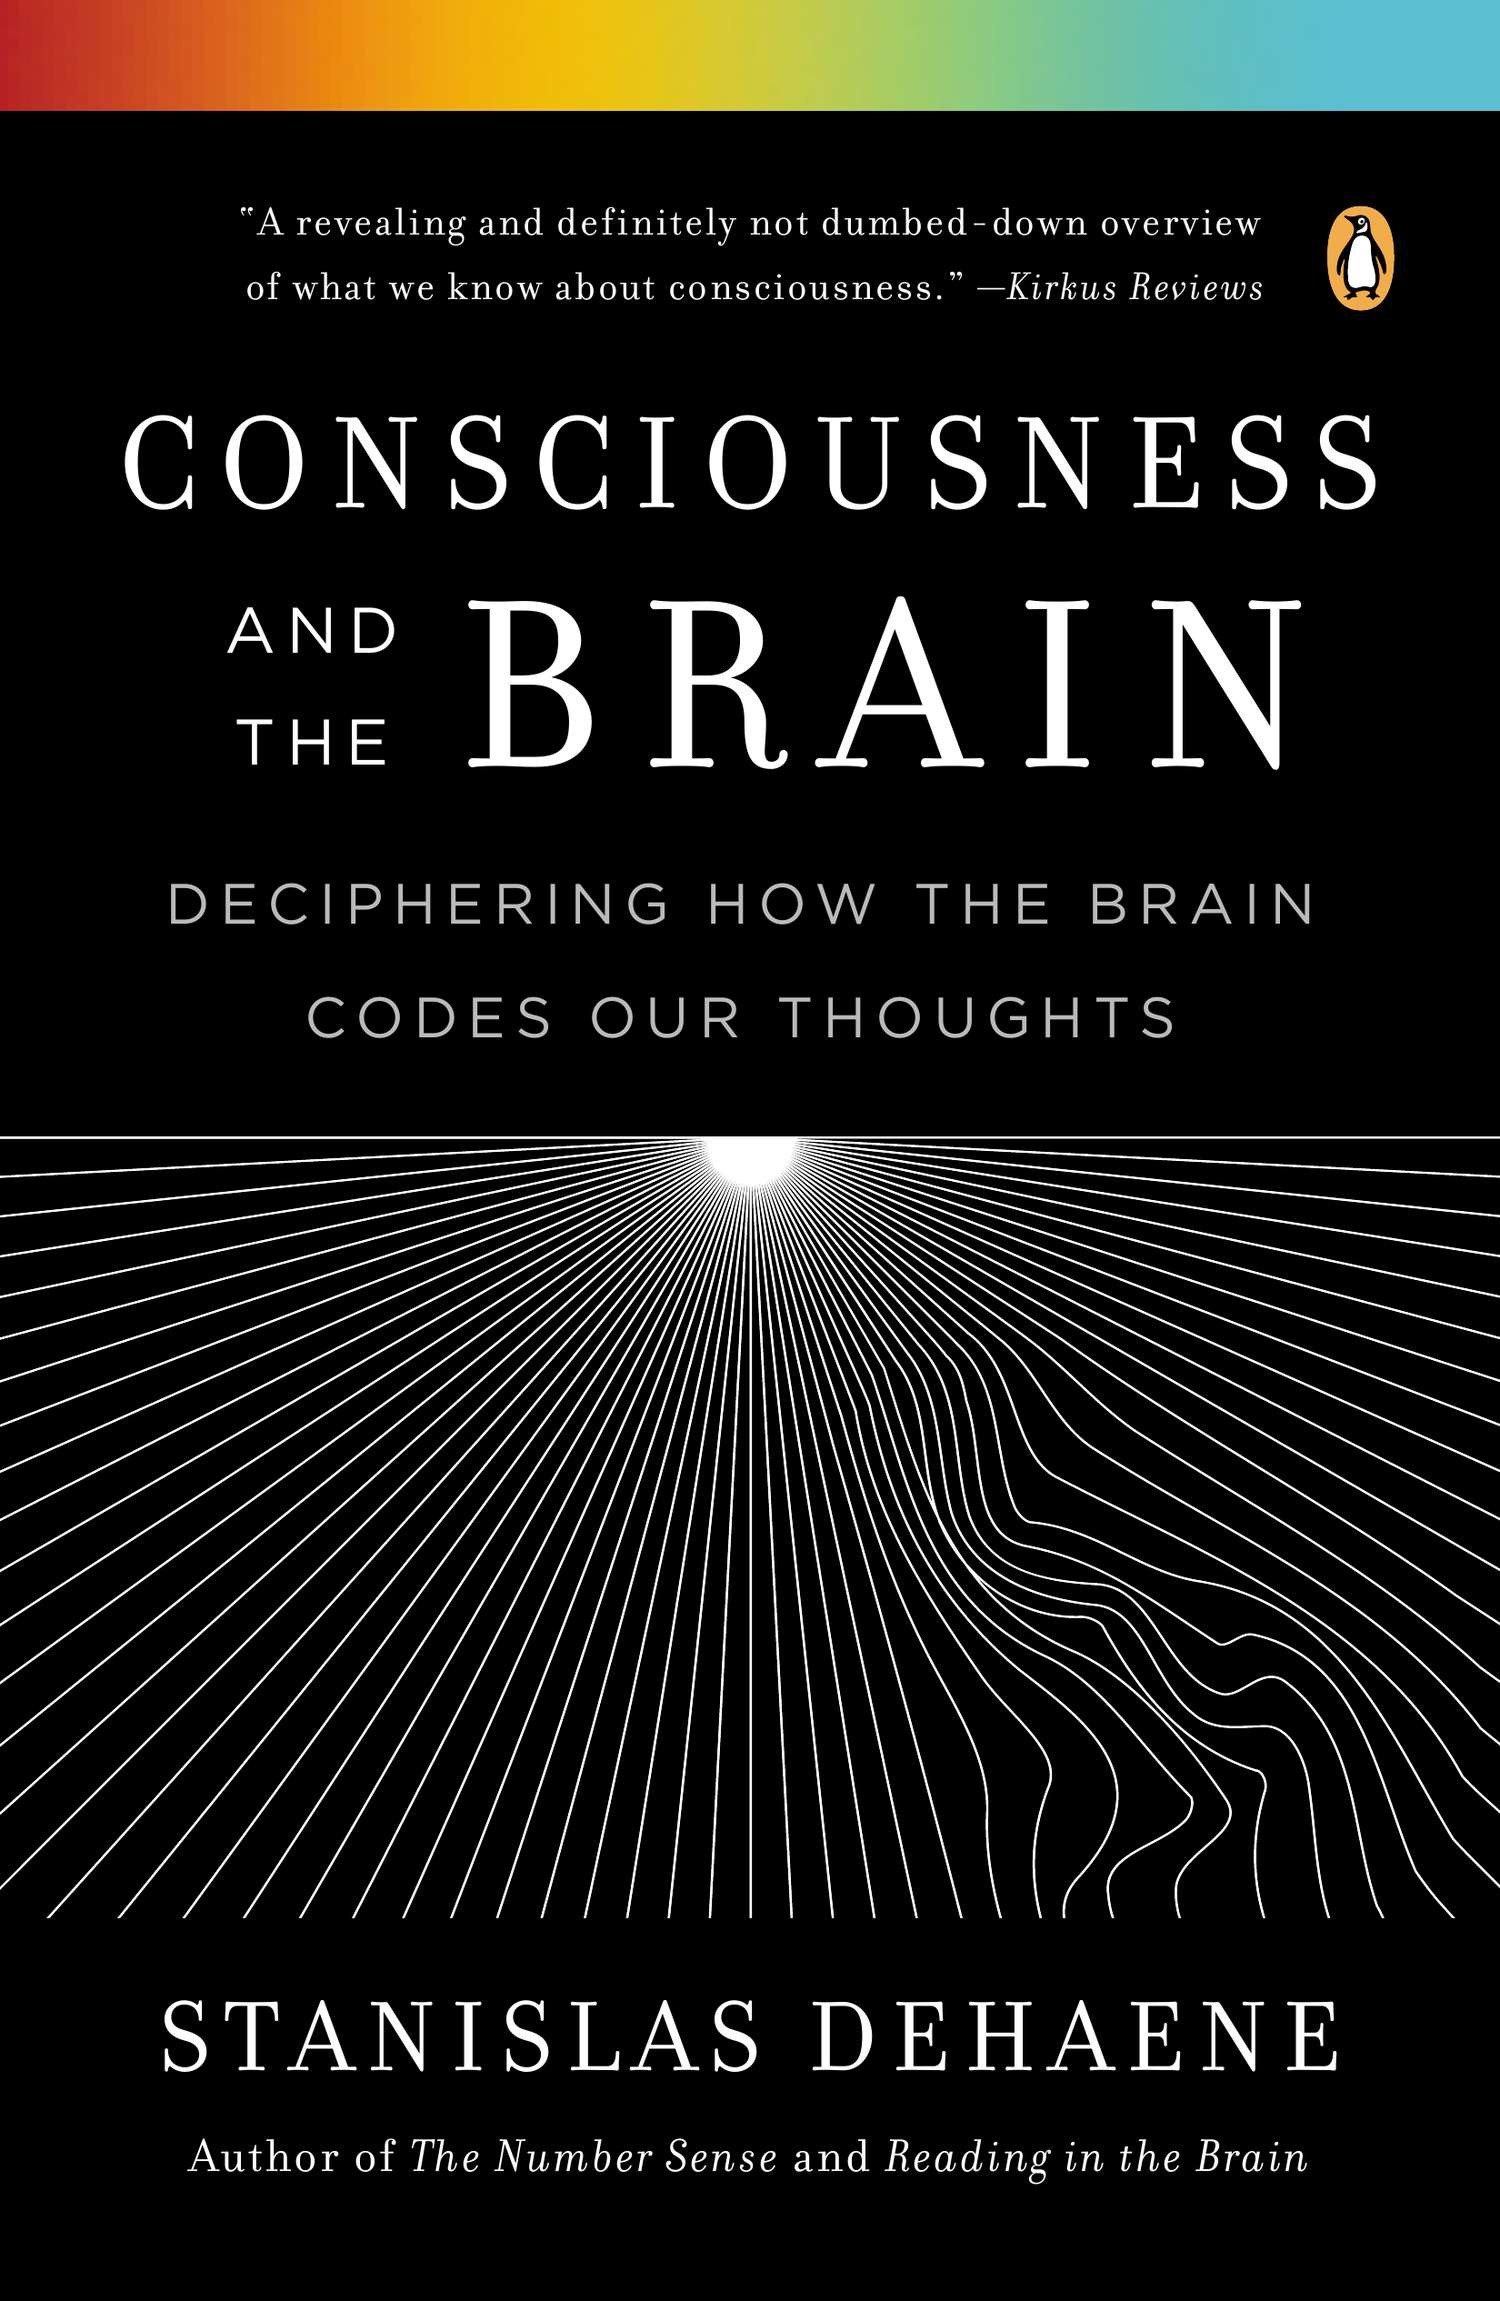 ABOUT CONSCIOUSNESS 21